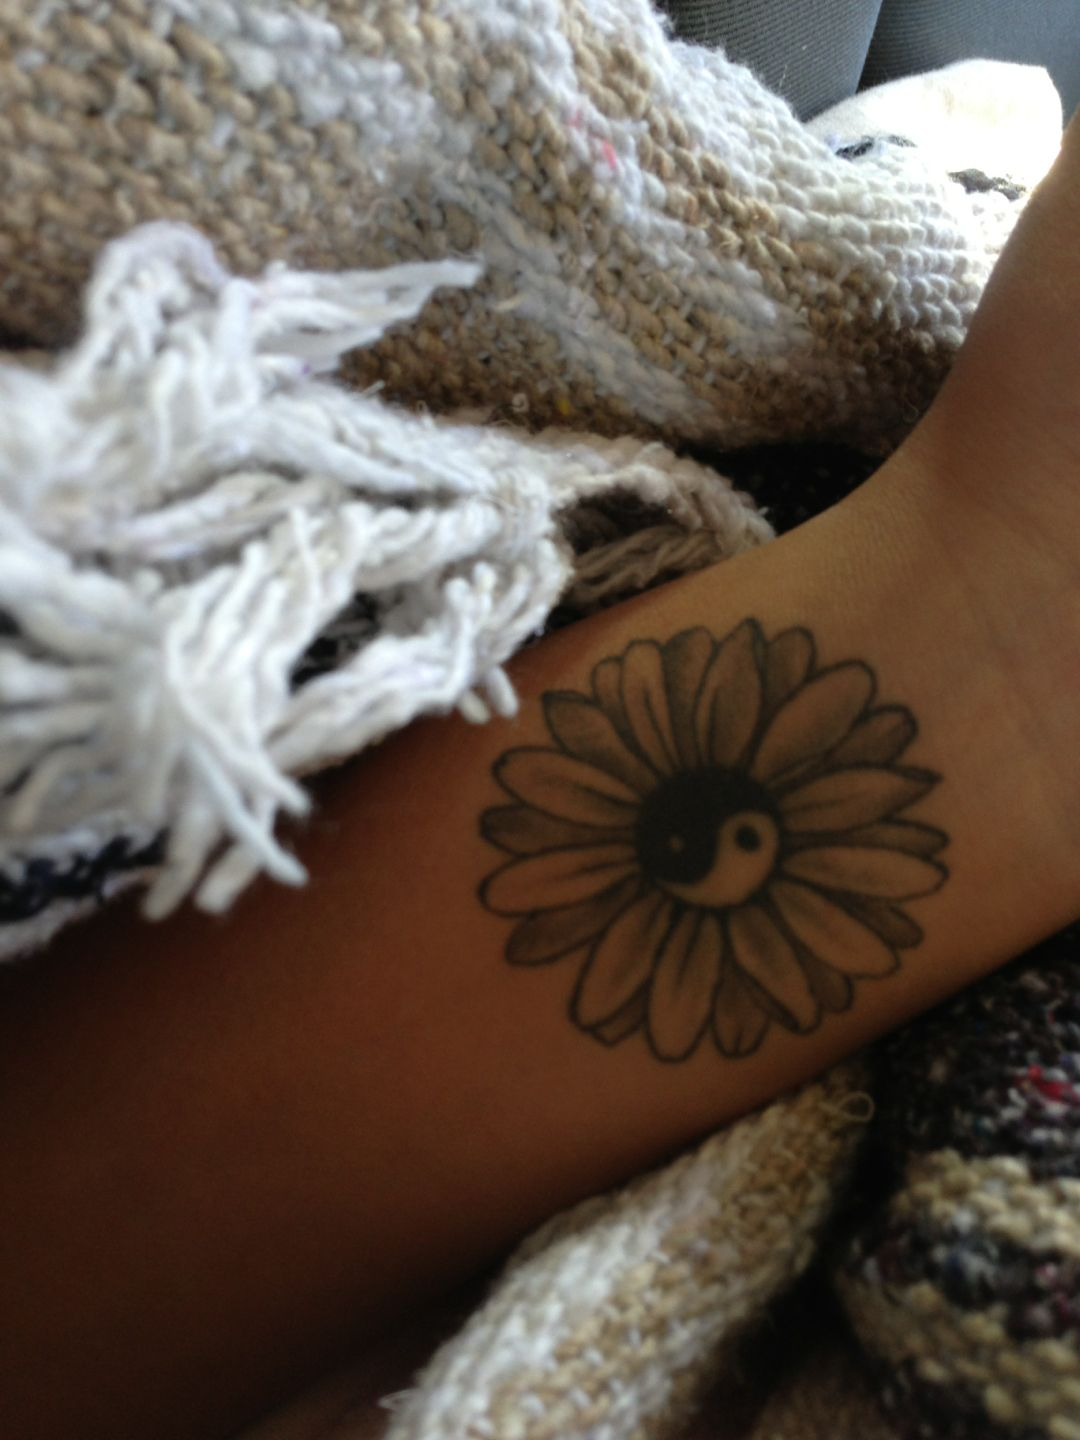 Ying yang flower tattoo pinterest flower tattoos tattoo and ying yang flower tattoo daisy tattoo designstattingdaisy meaningdaisy izmirmasajfo